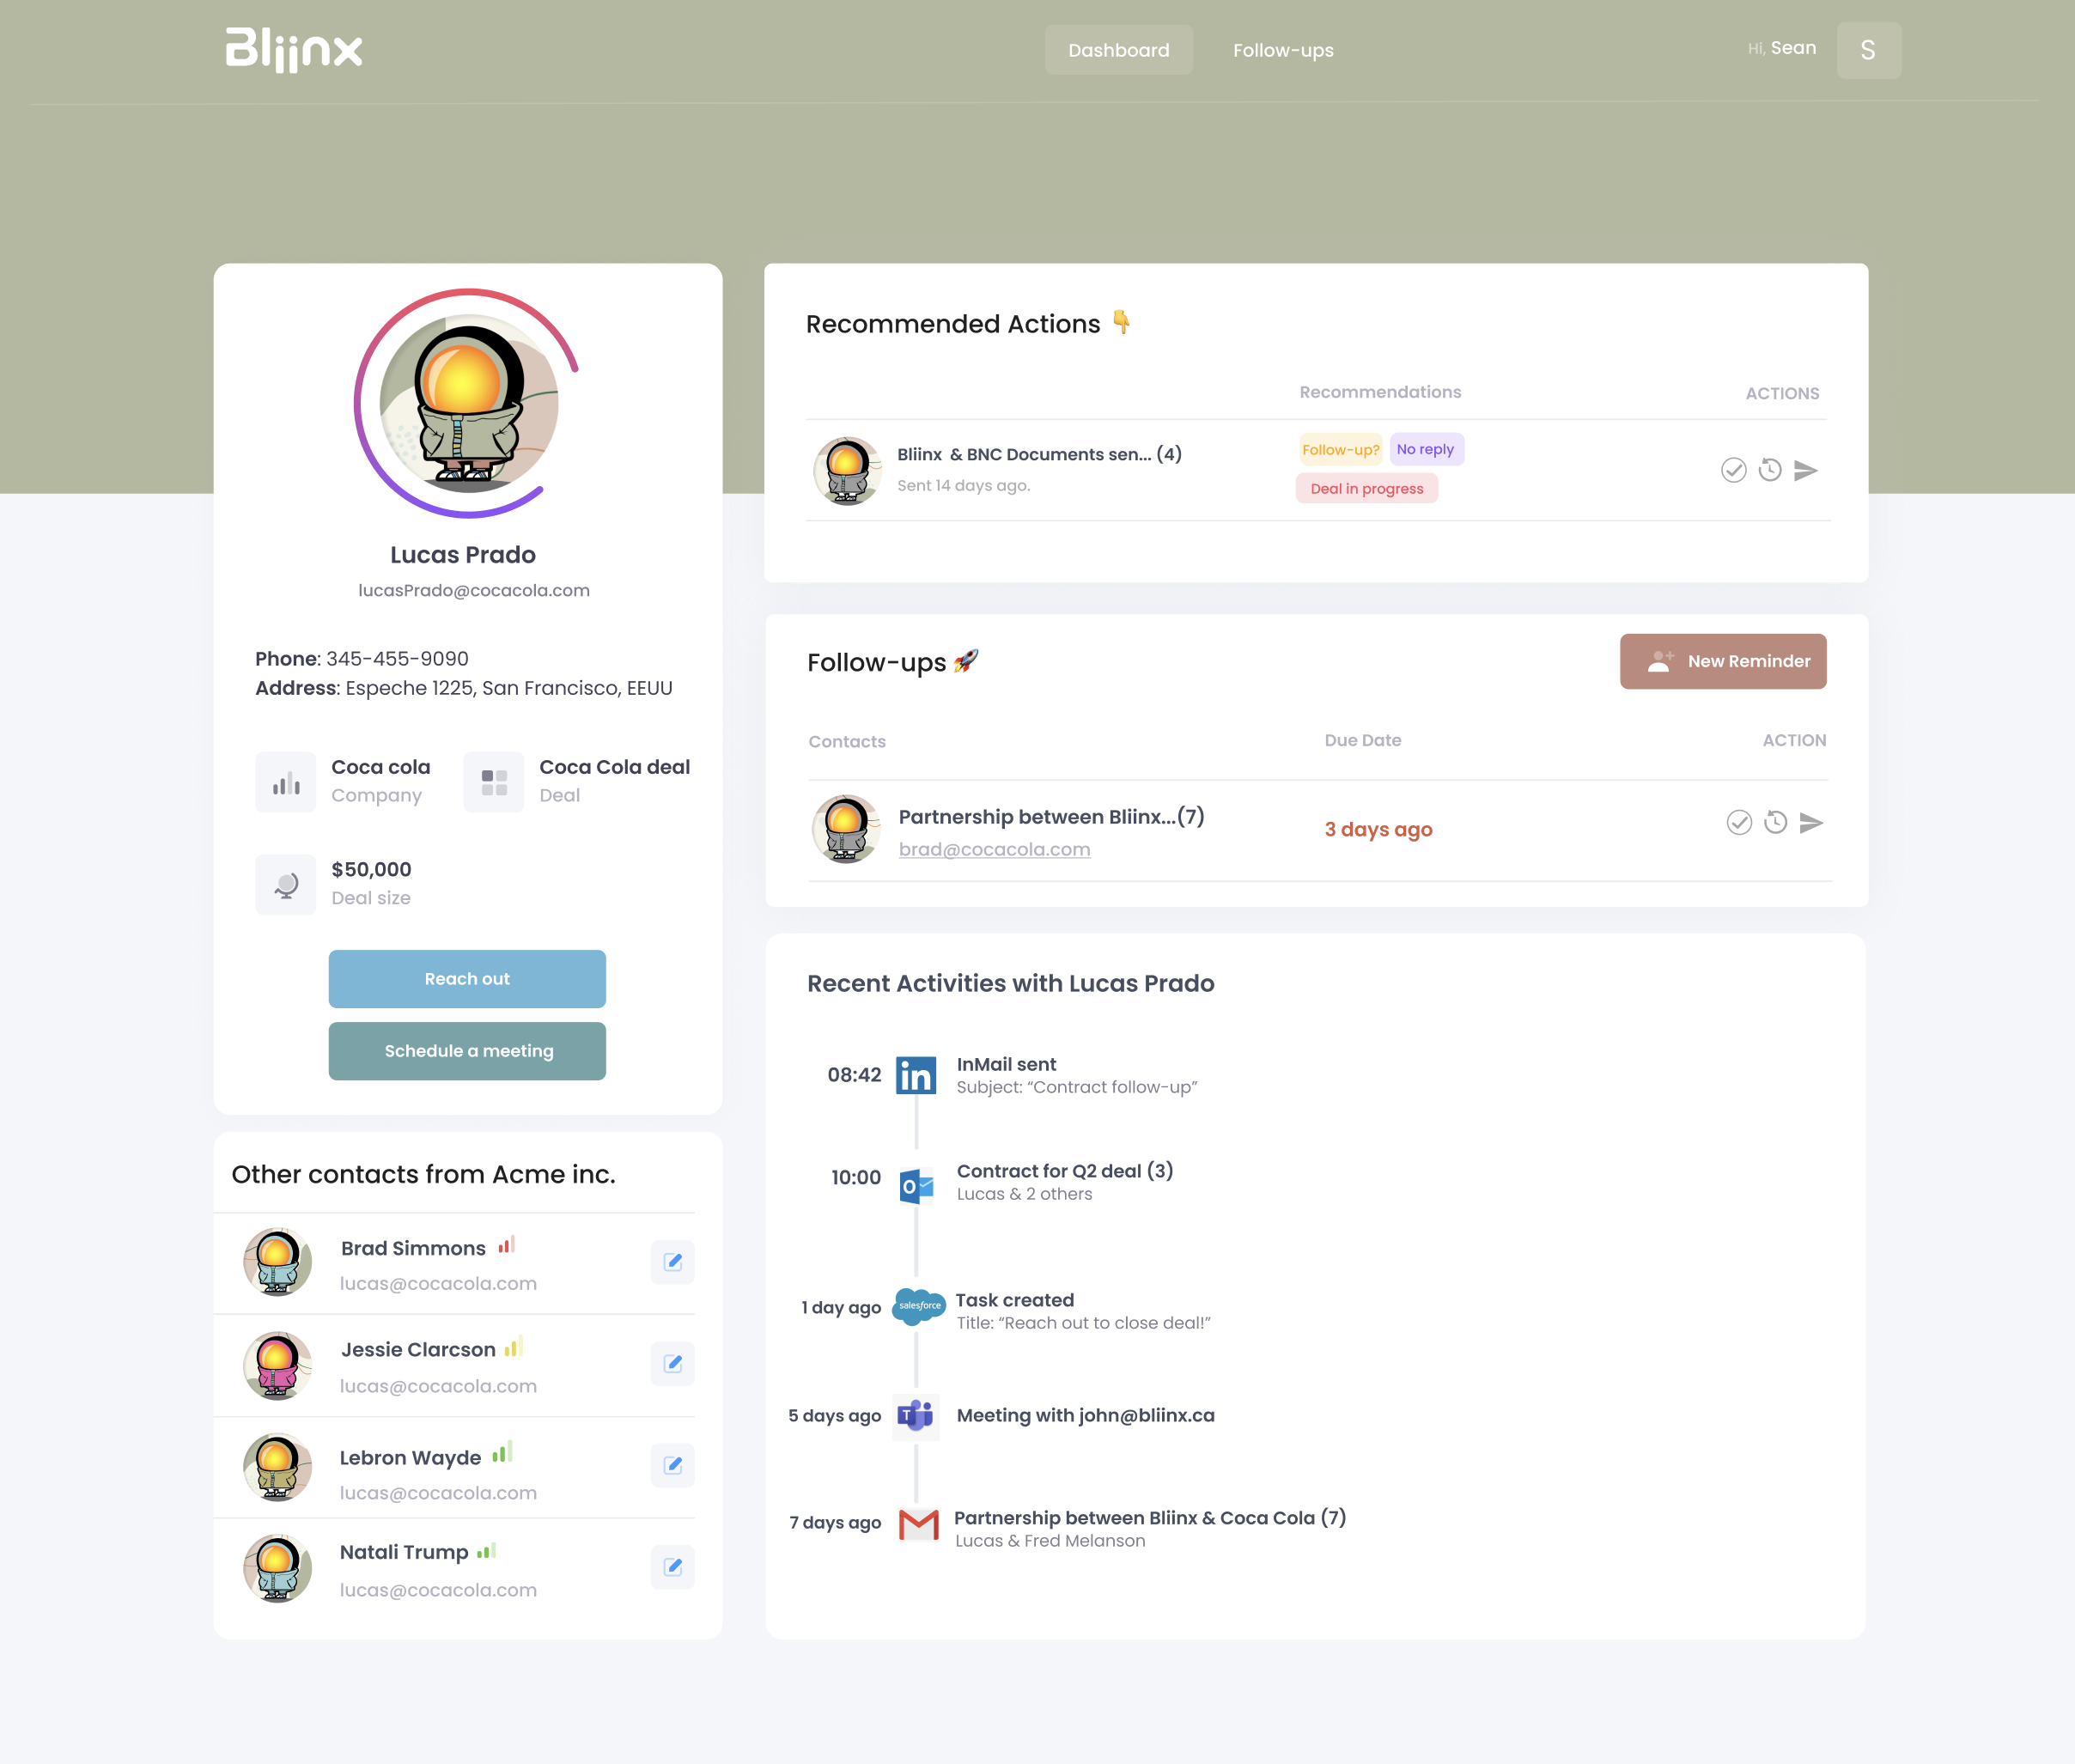 Bliinx Dashboard Contact Page